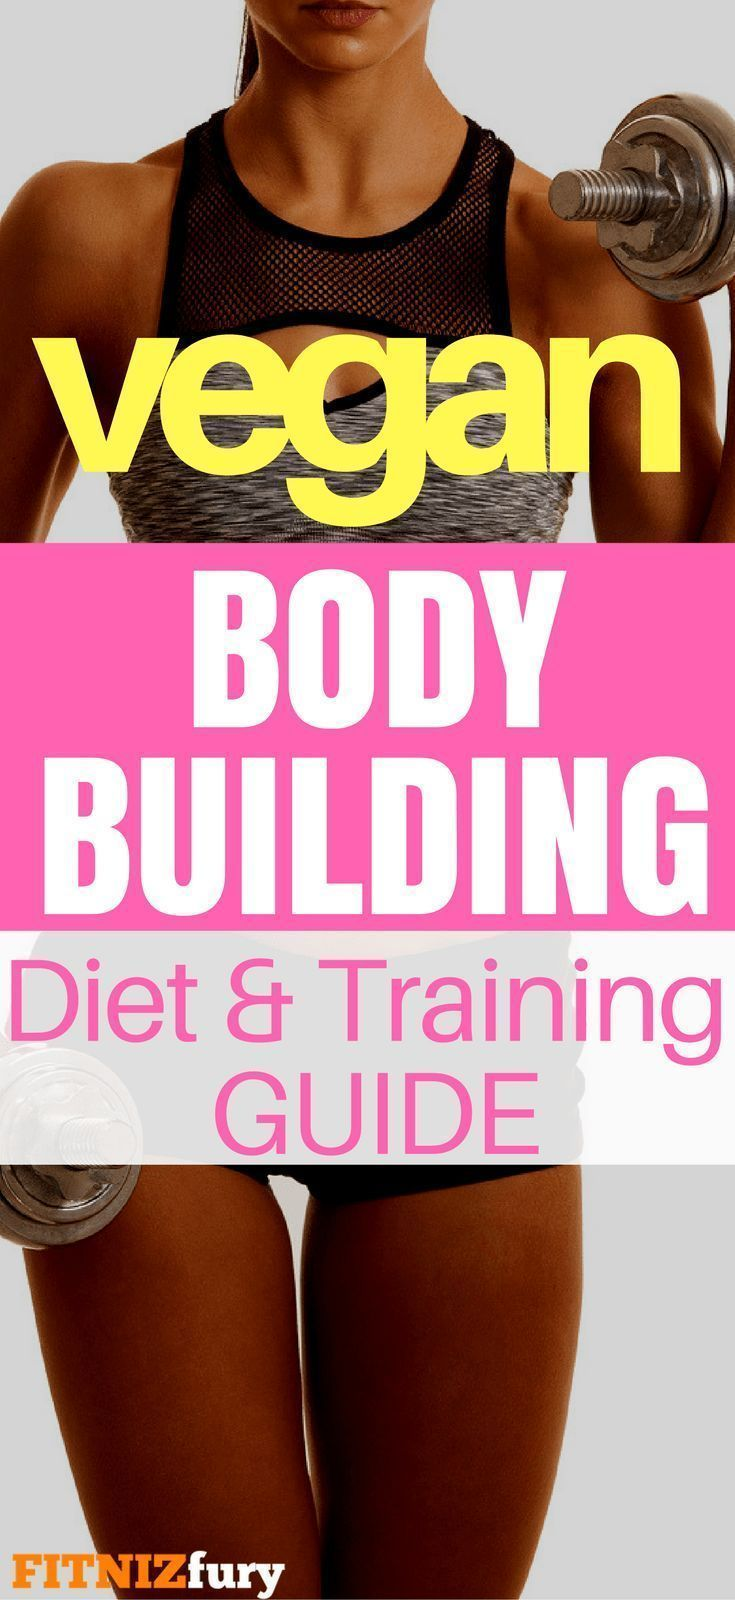 The Best Bodybuilding tips for Vegan and Plant-based Diets Learn how to build lean muscle on a Vegan or Plant-based diet. A complete guide to Vegan bodybuilding including how to meet your protein requirements, what supplements are ideal and how to avoid nutritional deficiencies. #athletenutrition